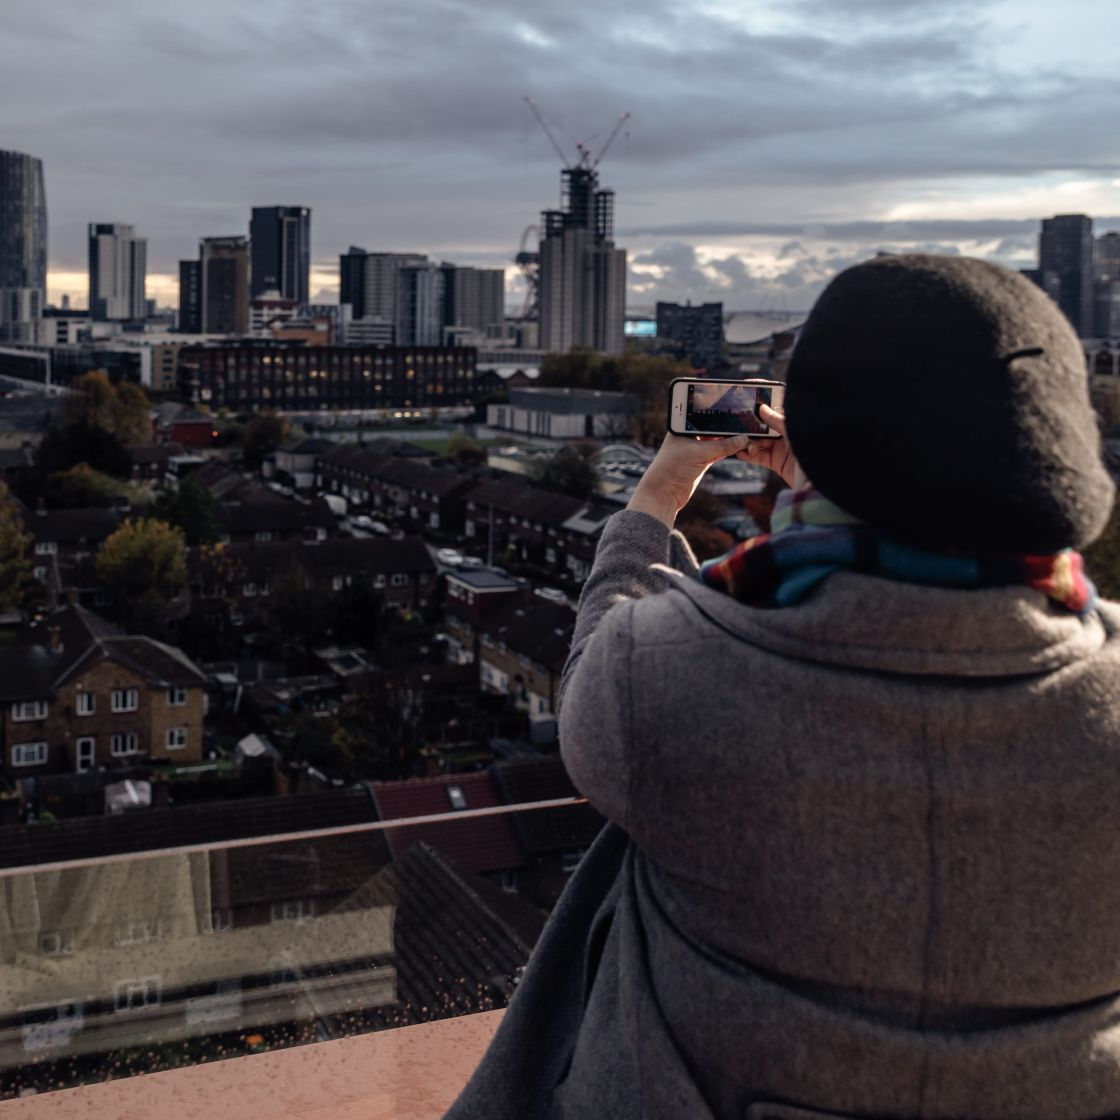 Girl taking photo of London skyline from balcony. Student Accommodation in London